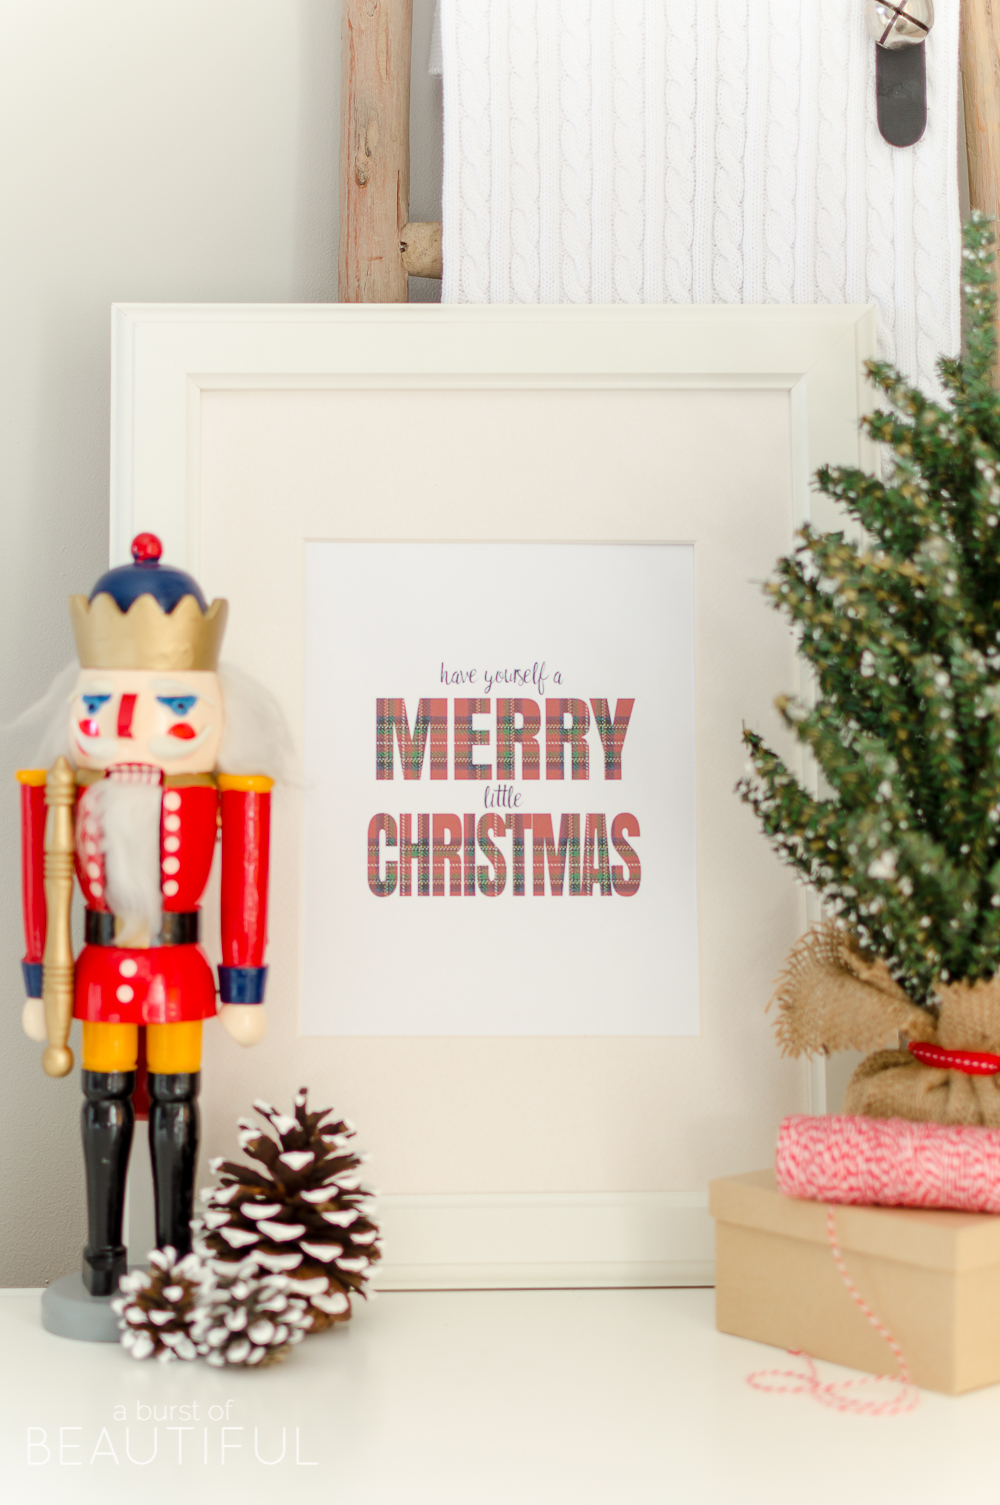 Download this Have Yourself a Merry Little Christmas printable to add a touch of holiday charm to your home during the Christmas season.